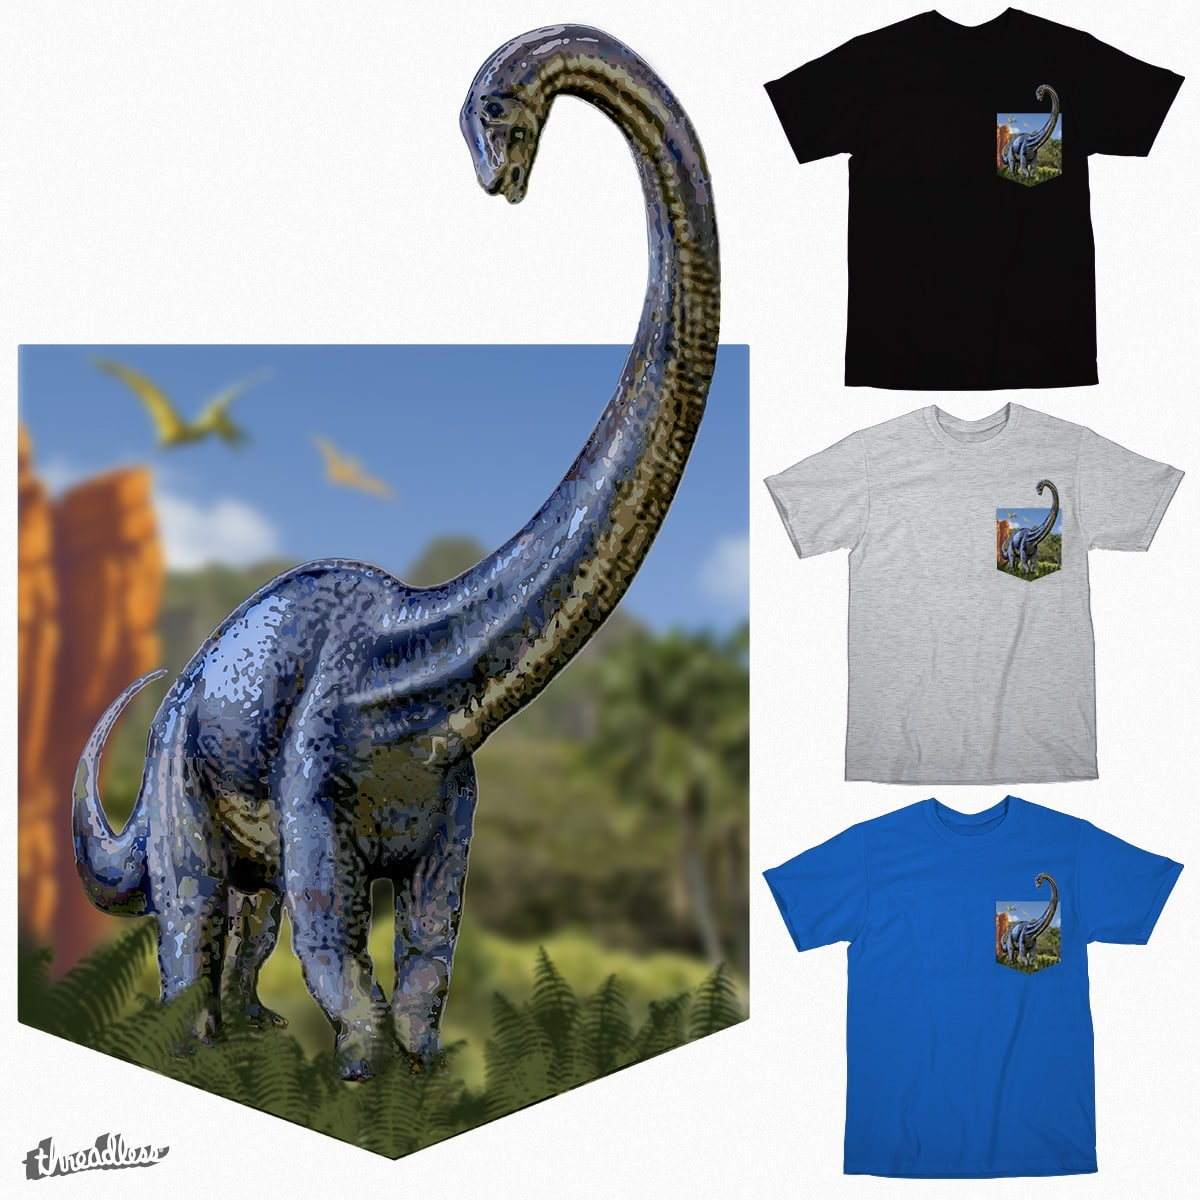 Dinosaur World - Pocket Edition. by jamieBryant on Threadless